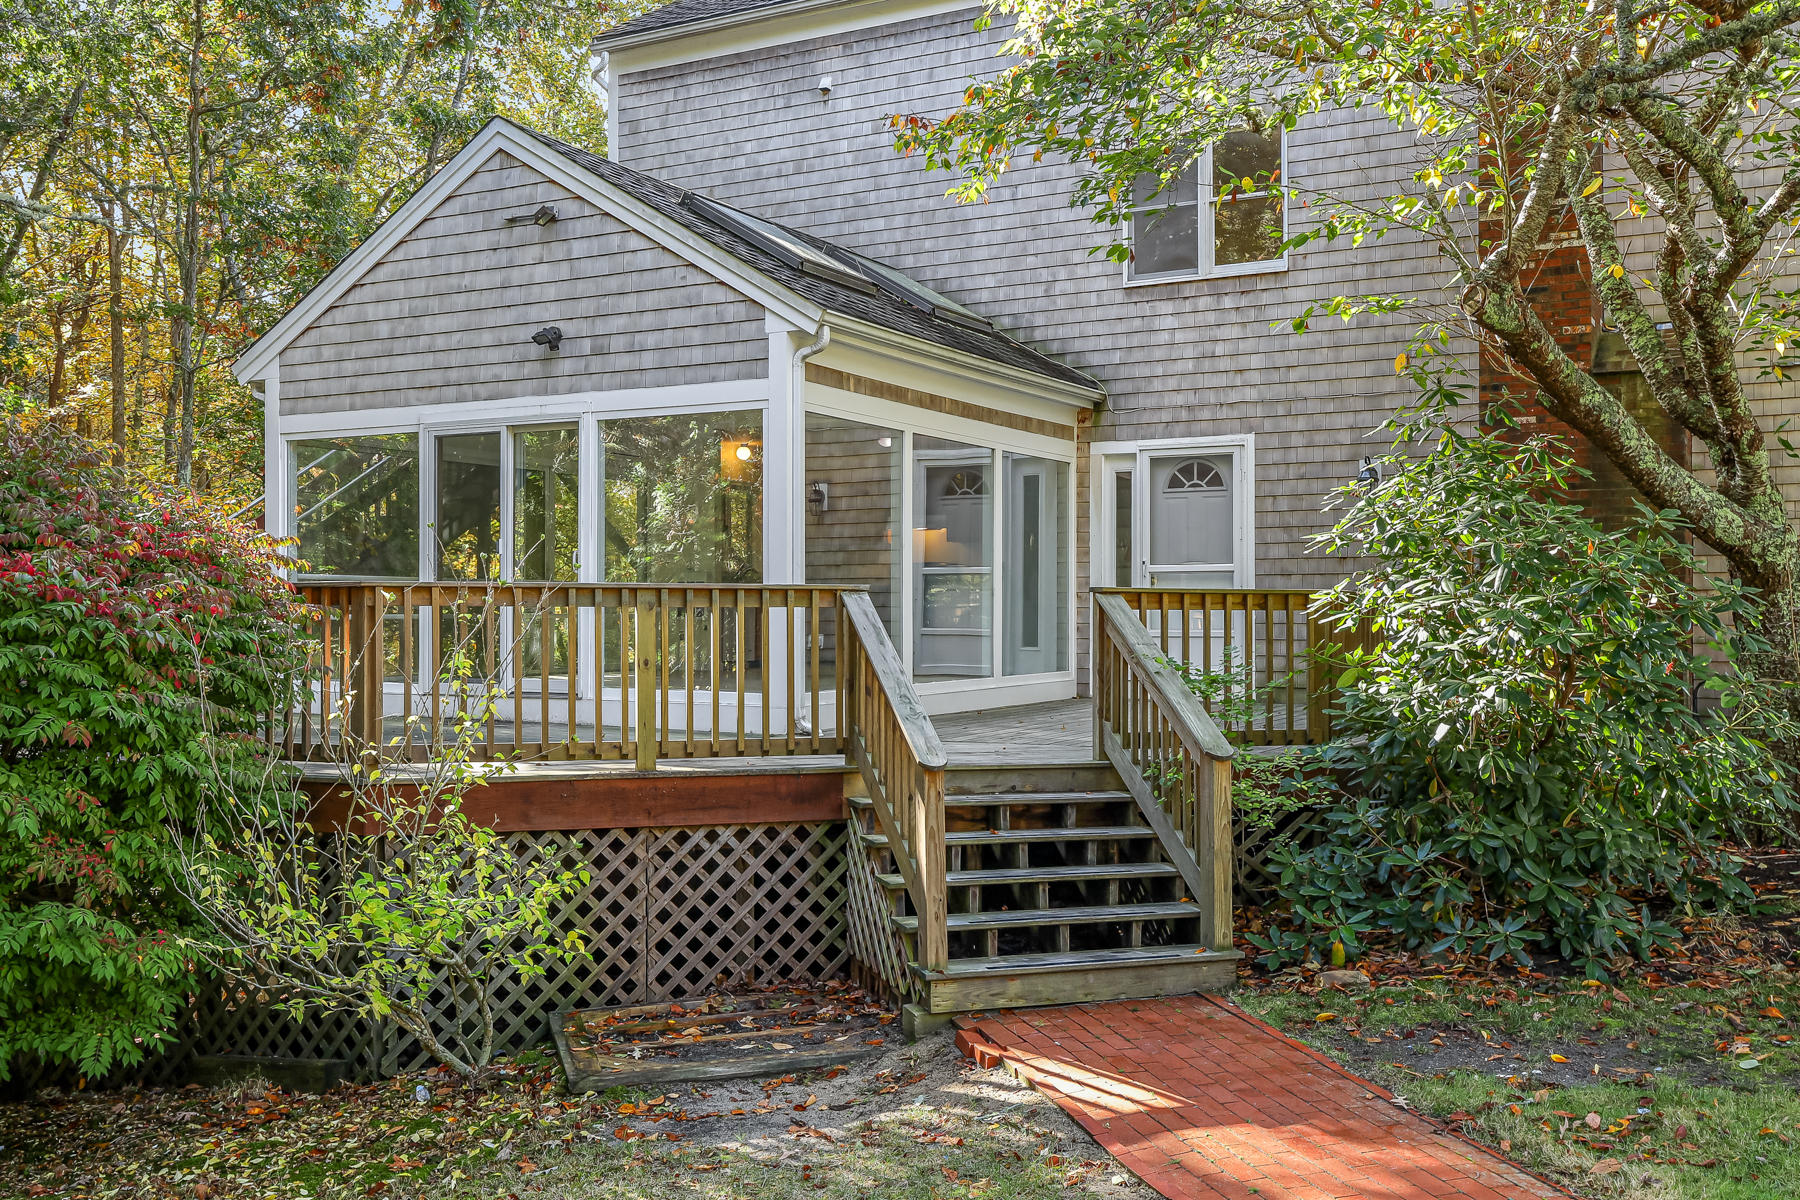 38-40 Headwaters Drive, West Yarmouth MA, 02673 details